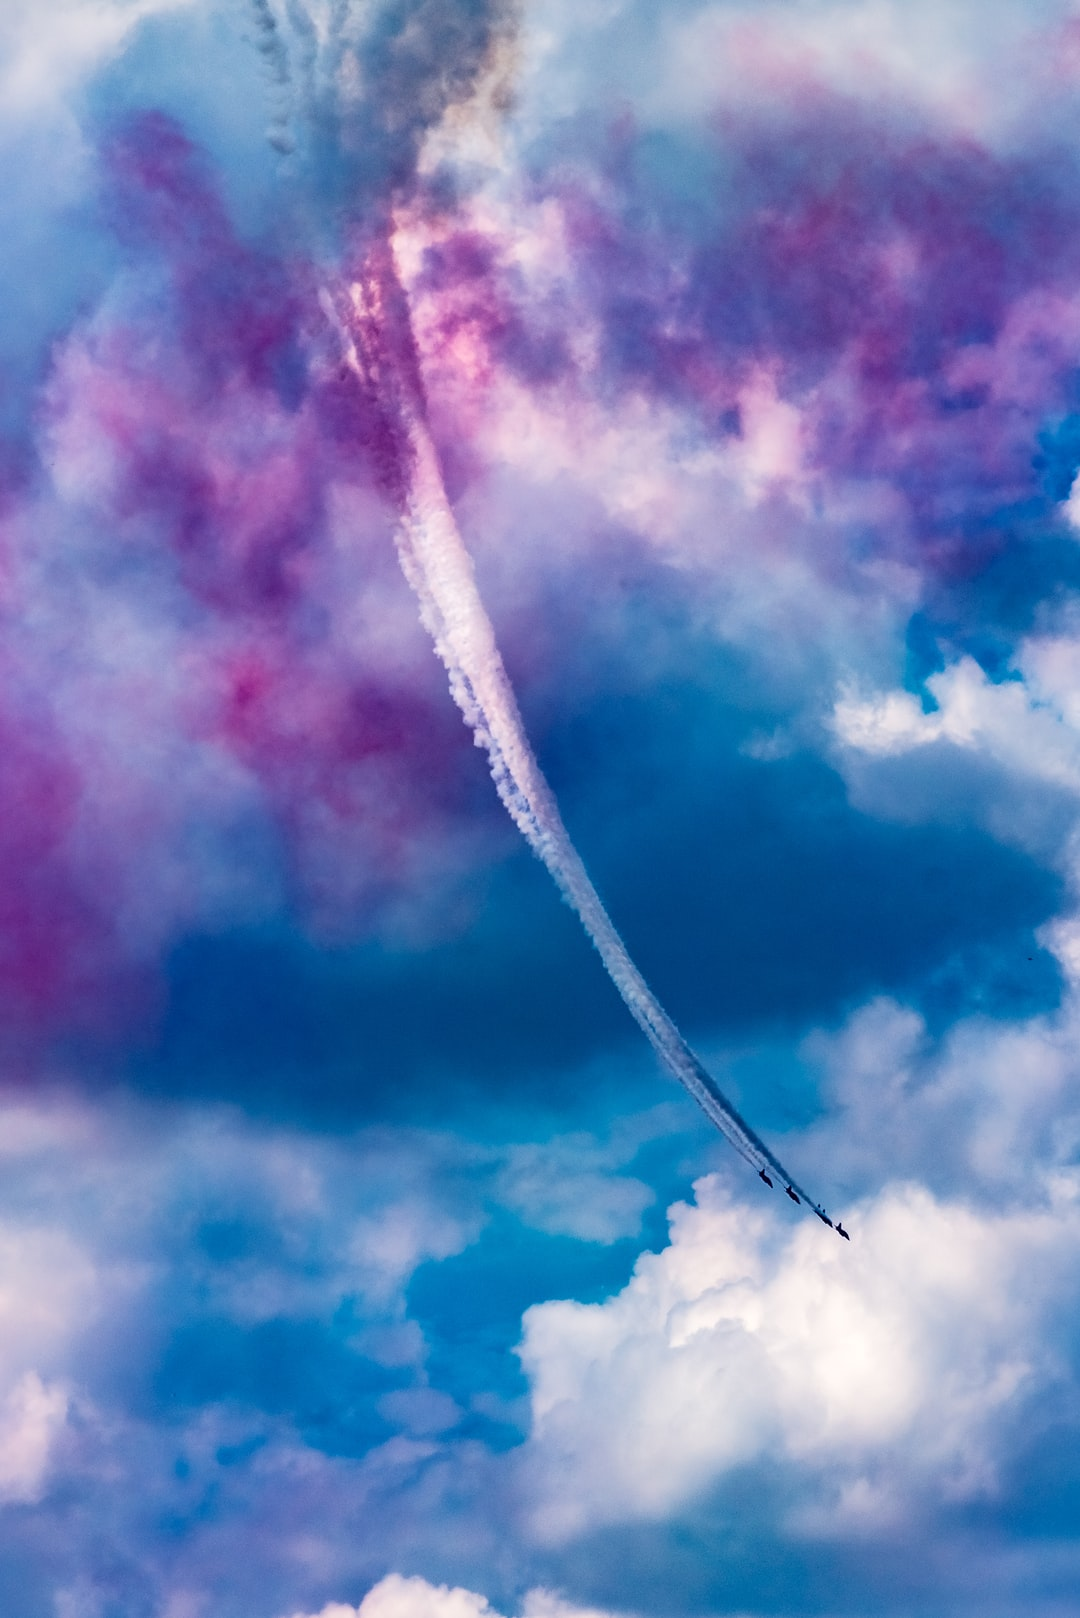 Red Arrows blasting through the sky